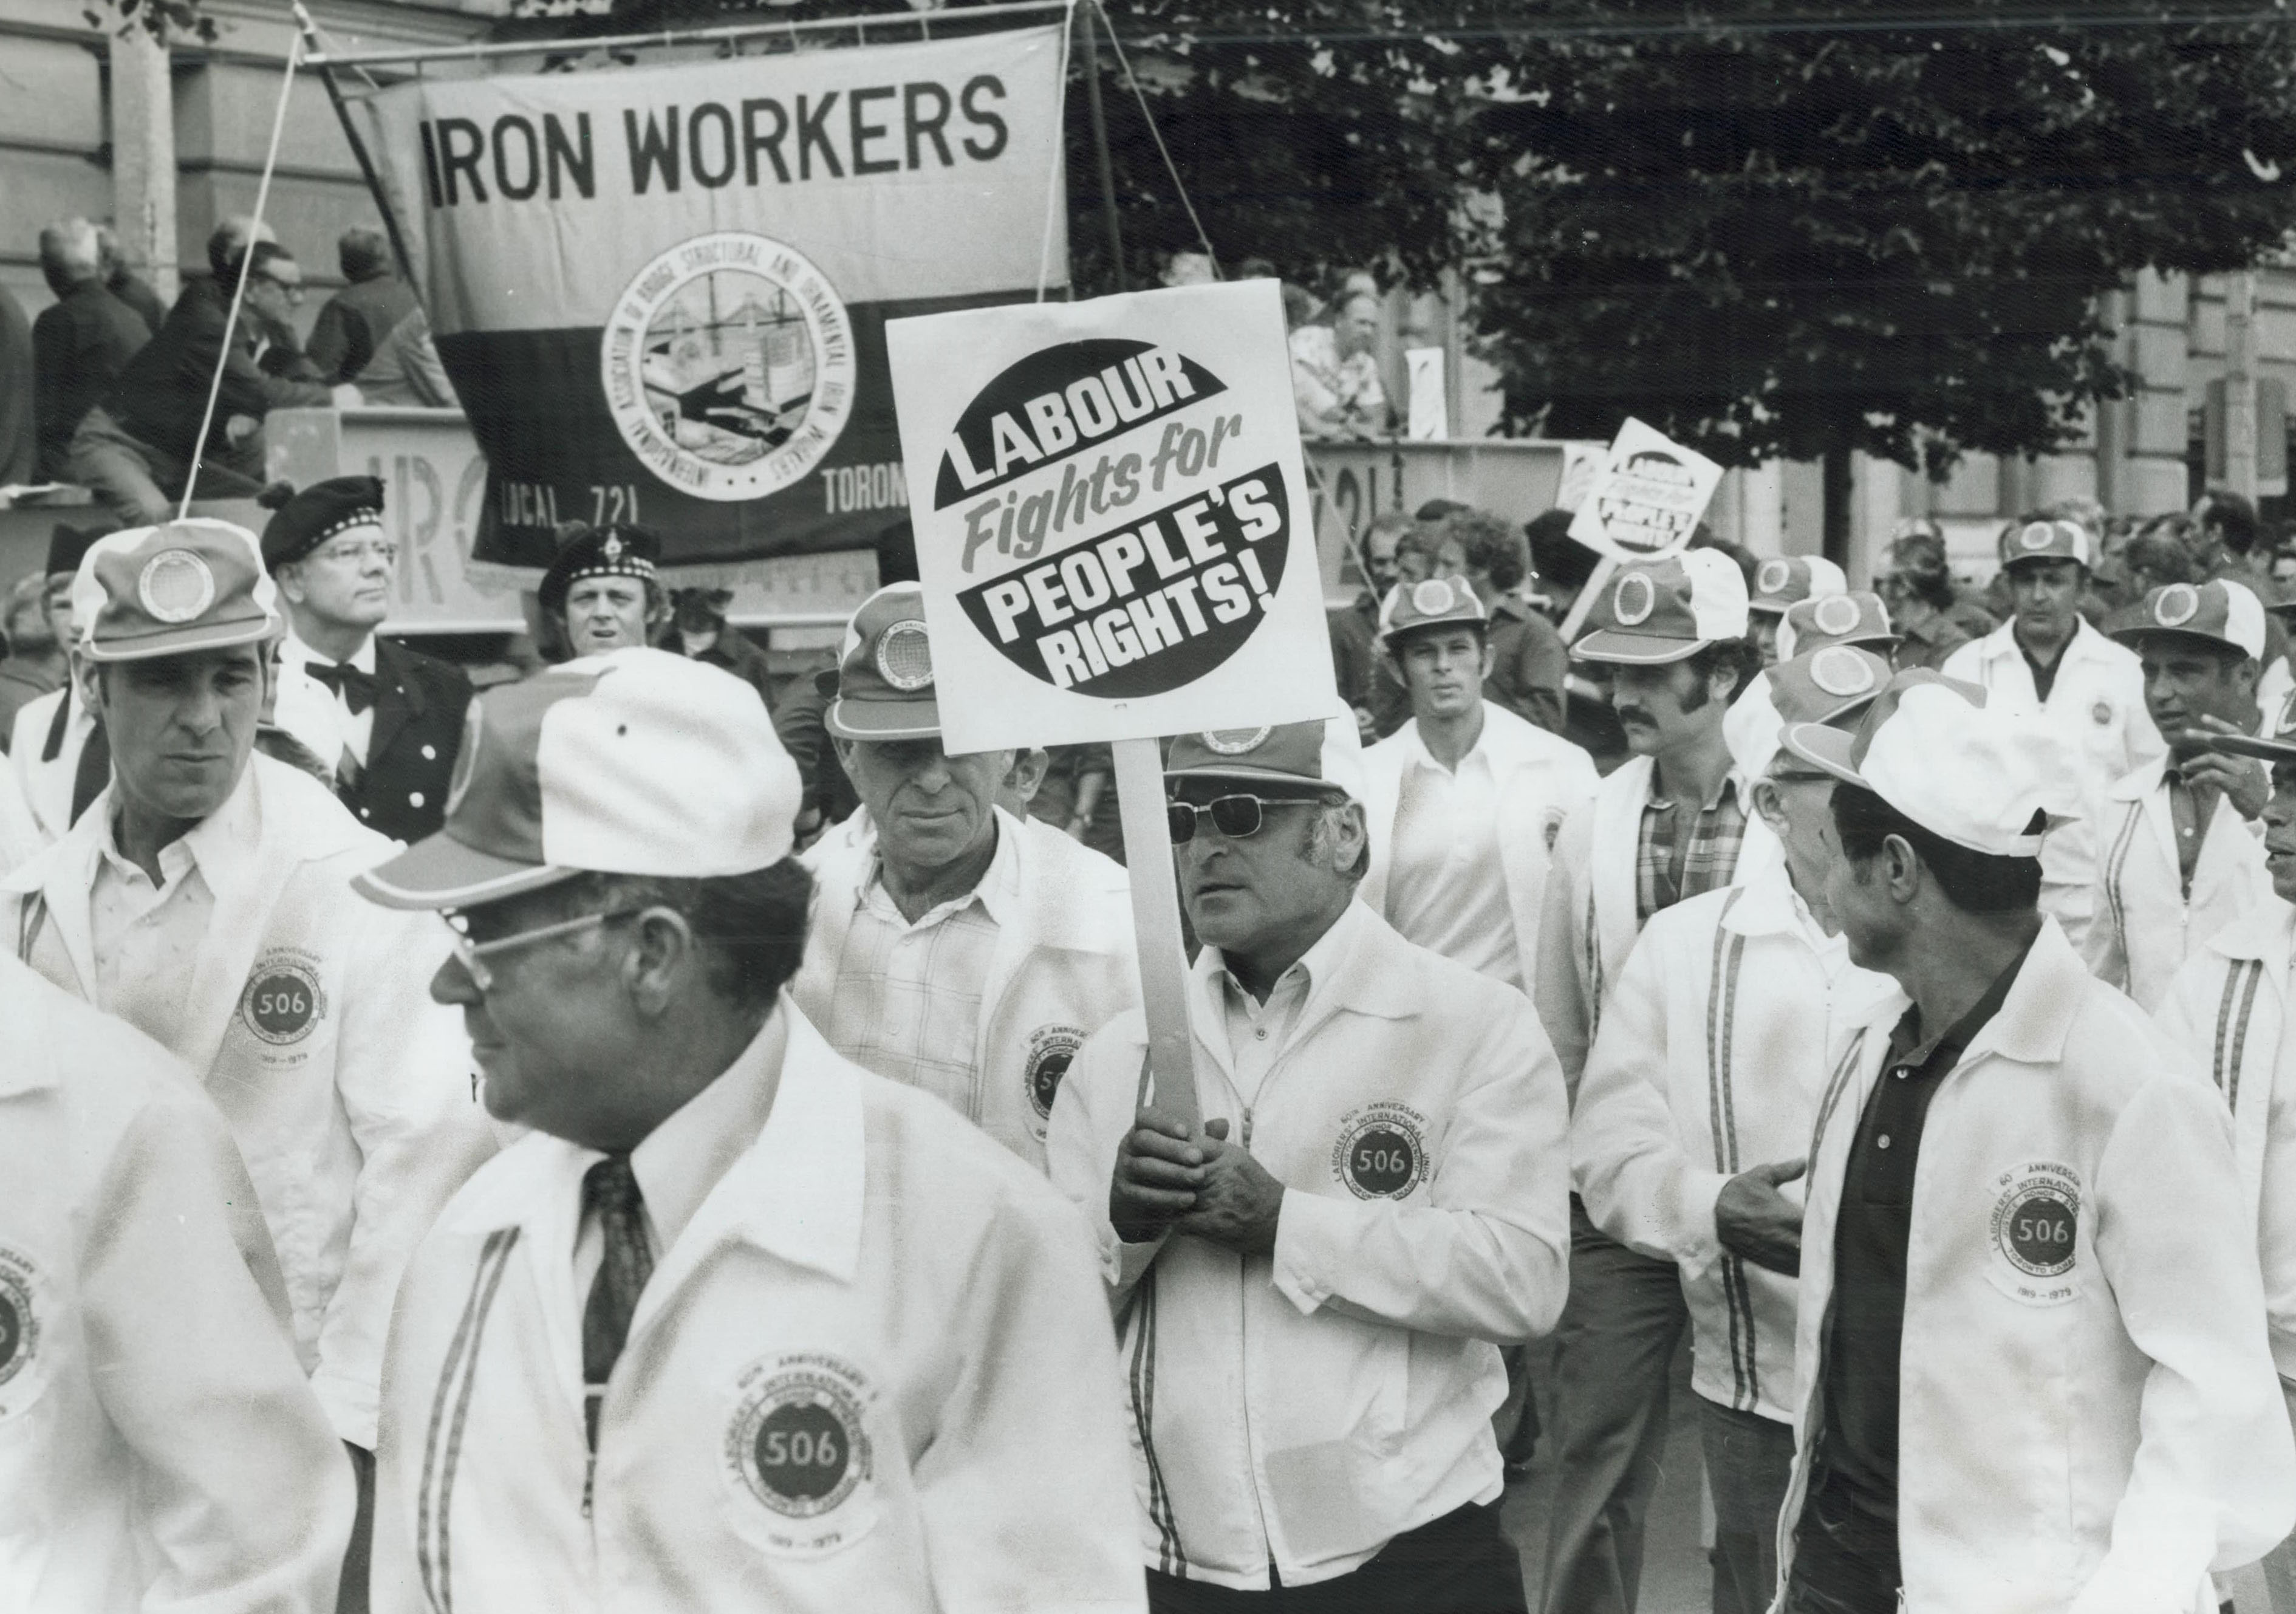 Labor day parade: Since 1886; Ontario workers have celebrated their day by marching together. In this 1979 photo; union members are shown attacking the provincial government's planned spending cutbacks.